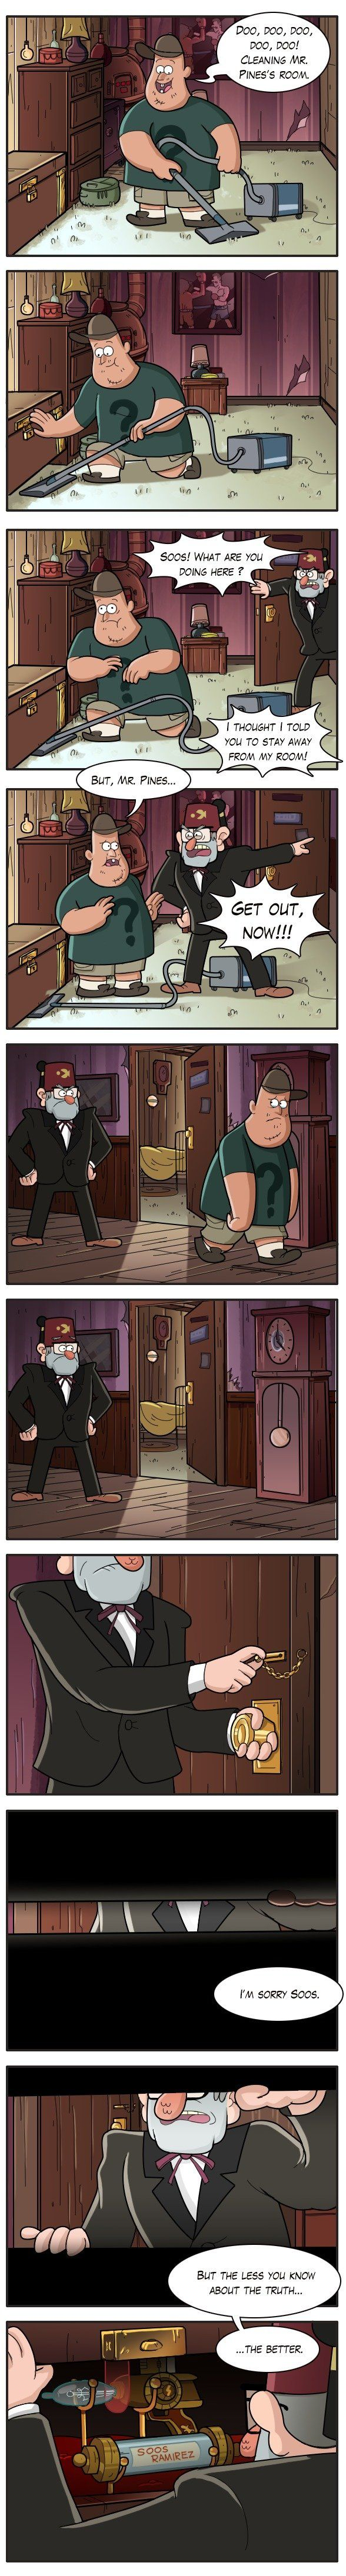 1000 Images About Gravity Falls On Pinterest The